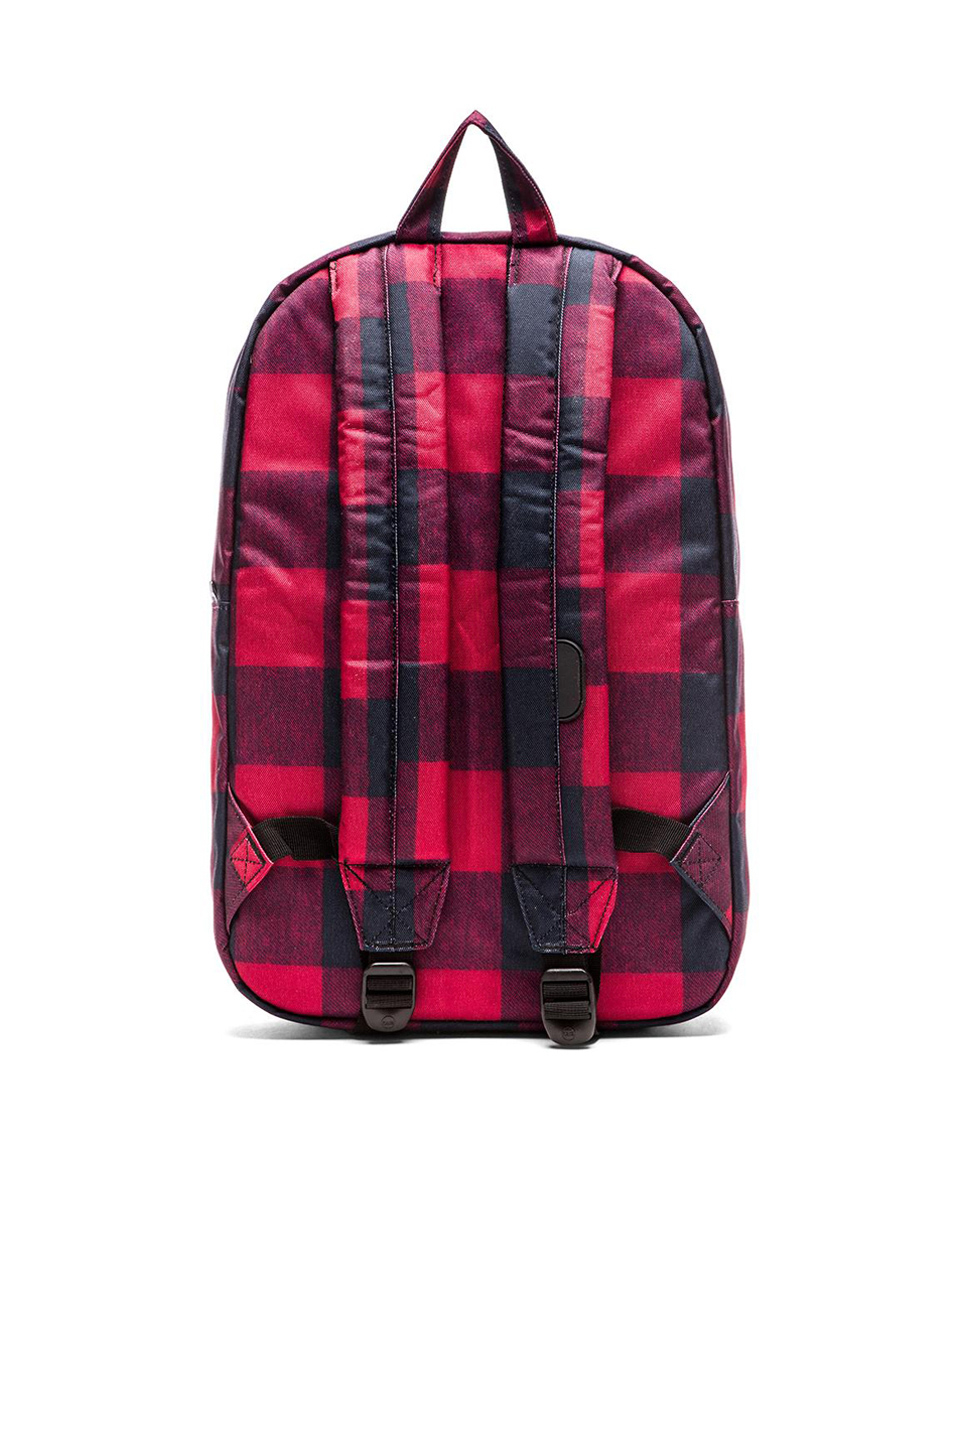 Lyst - Herschel Supply Co. Heritage Backpack in Pink for Men 2a6be823b347d